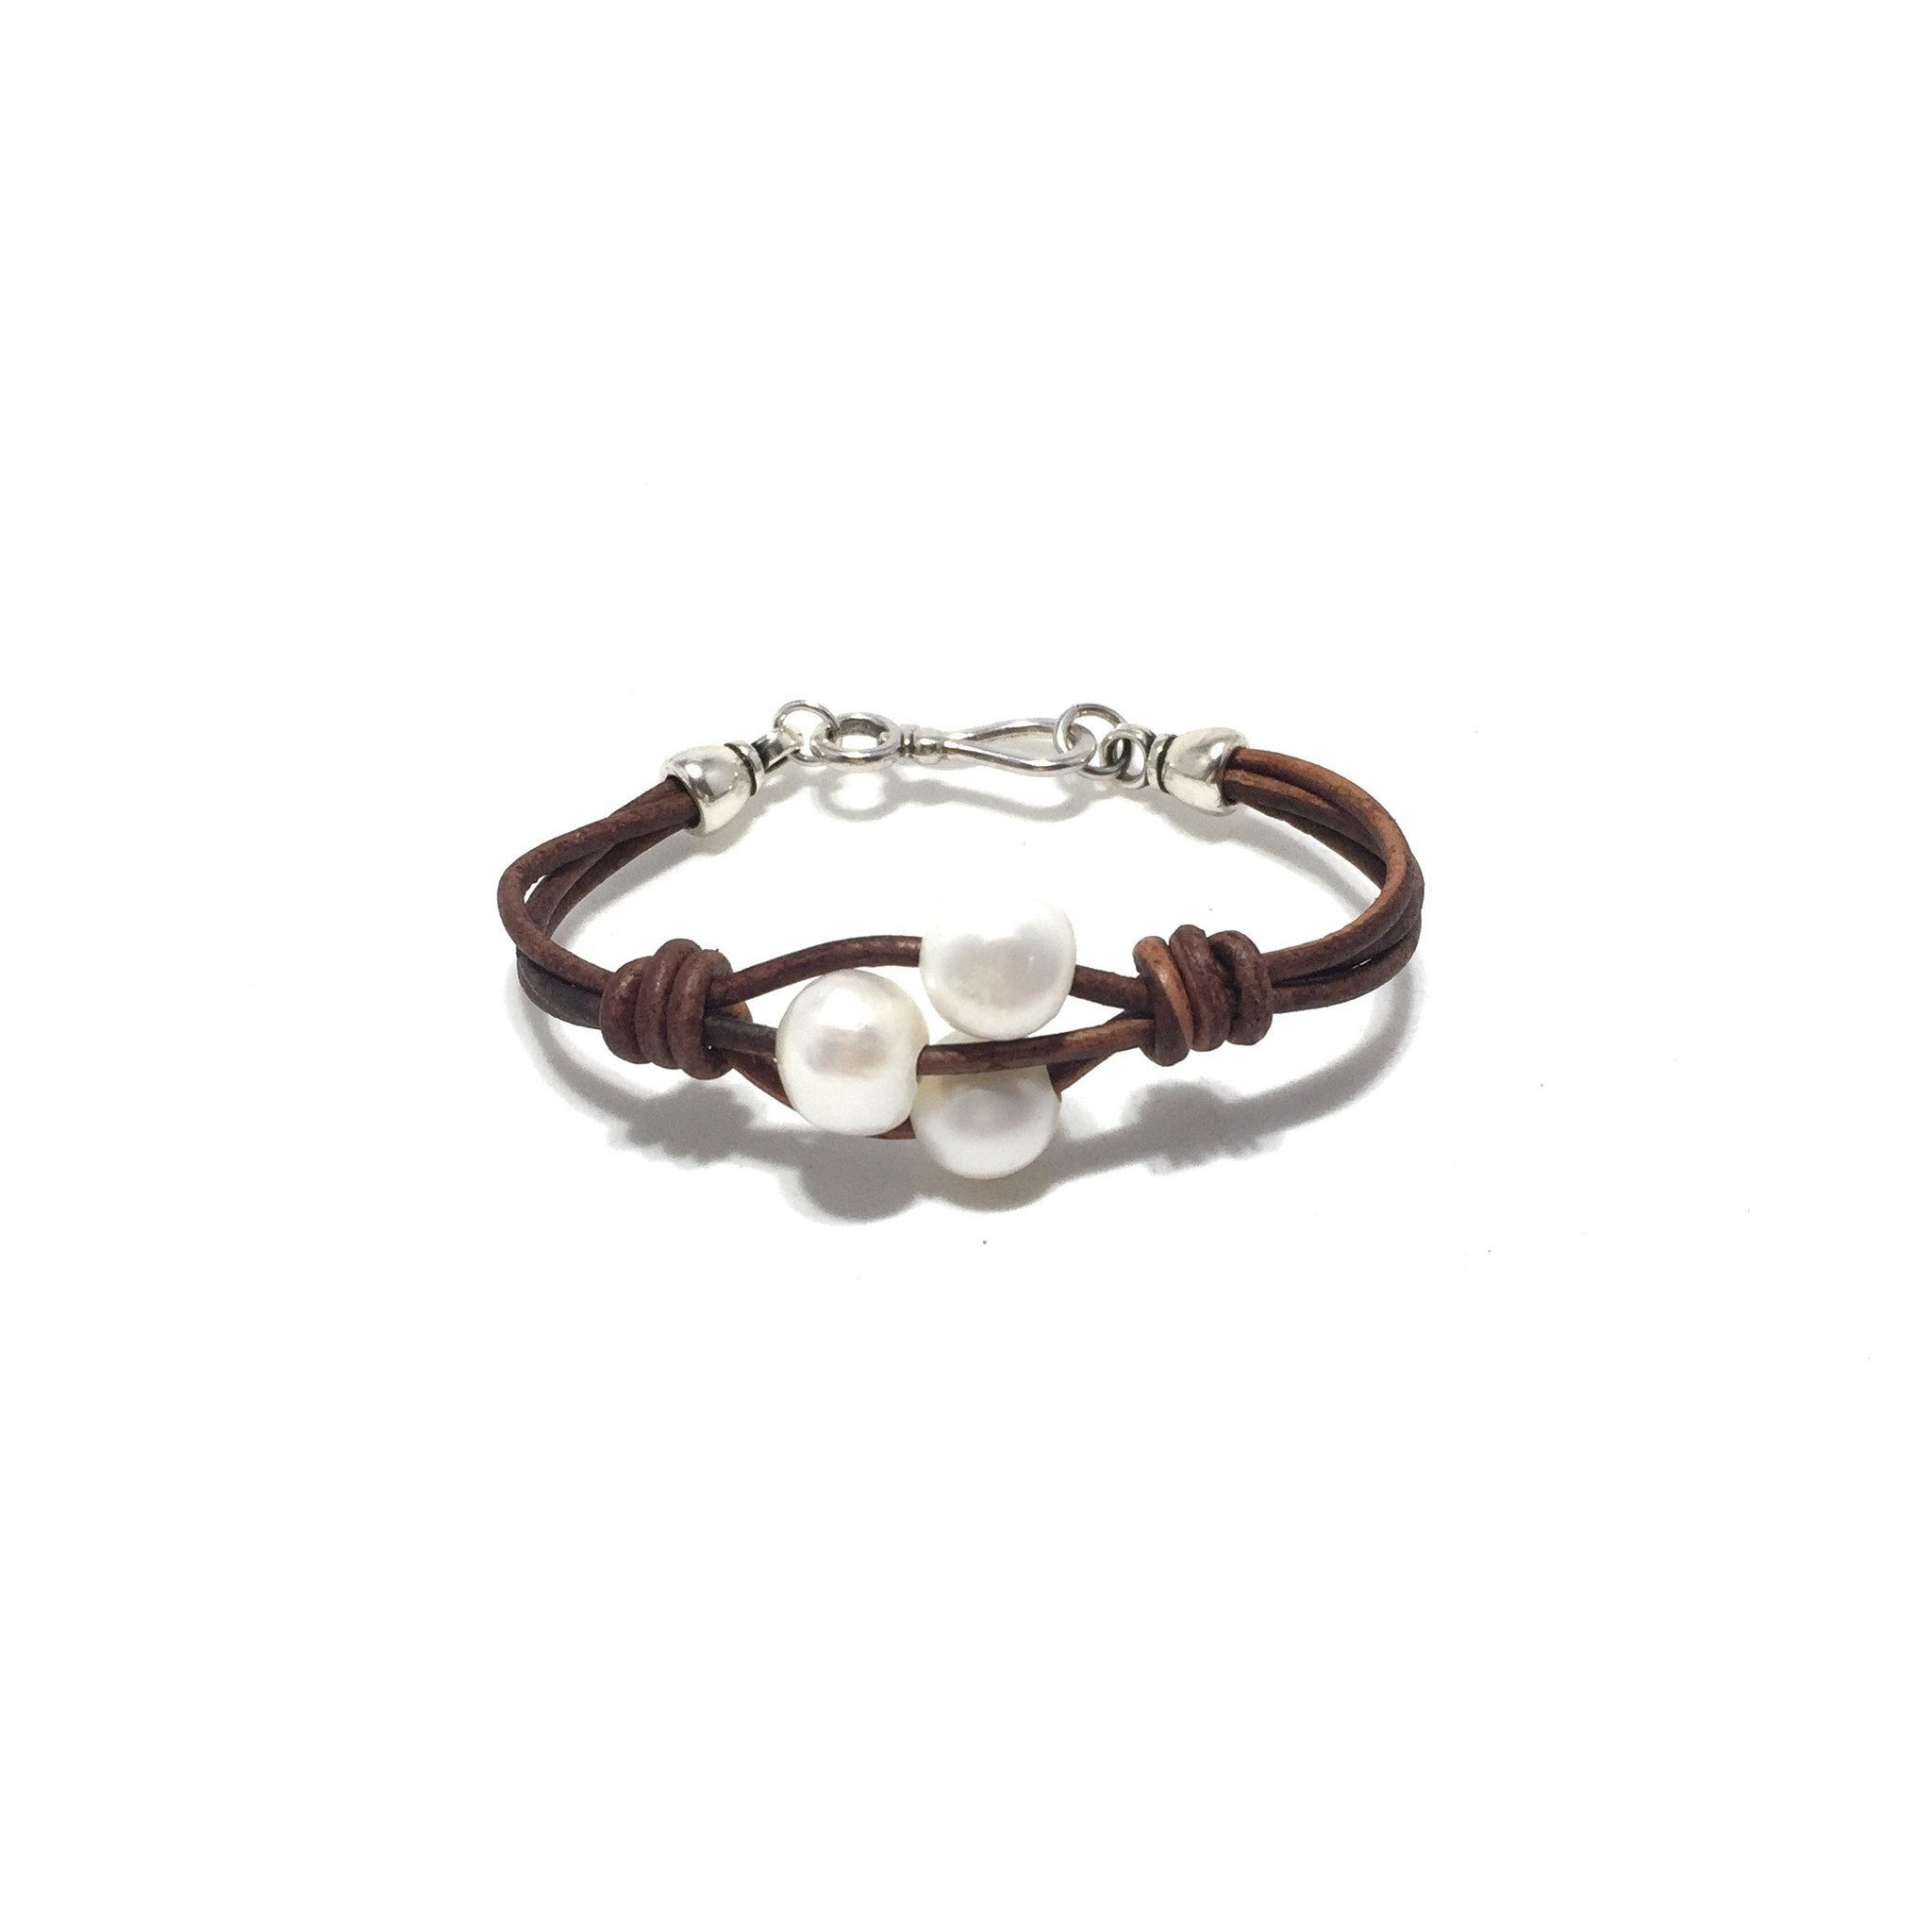 Three pearl Leather Bracelet - SPREE